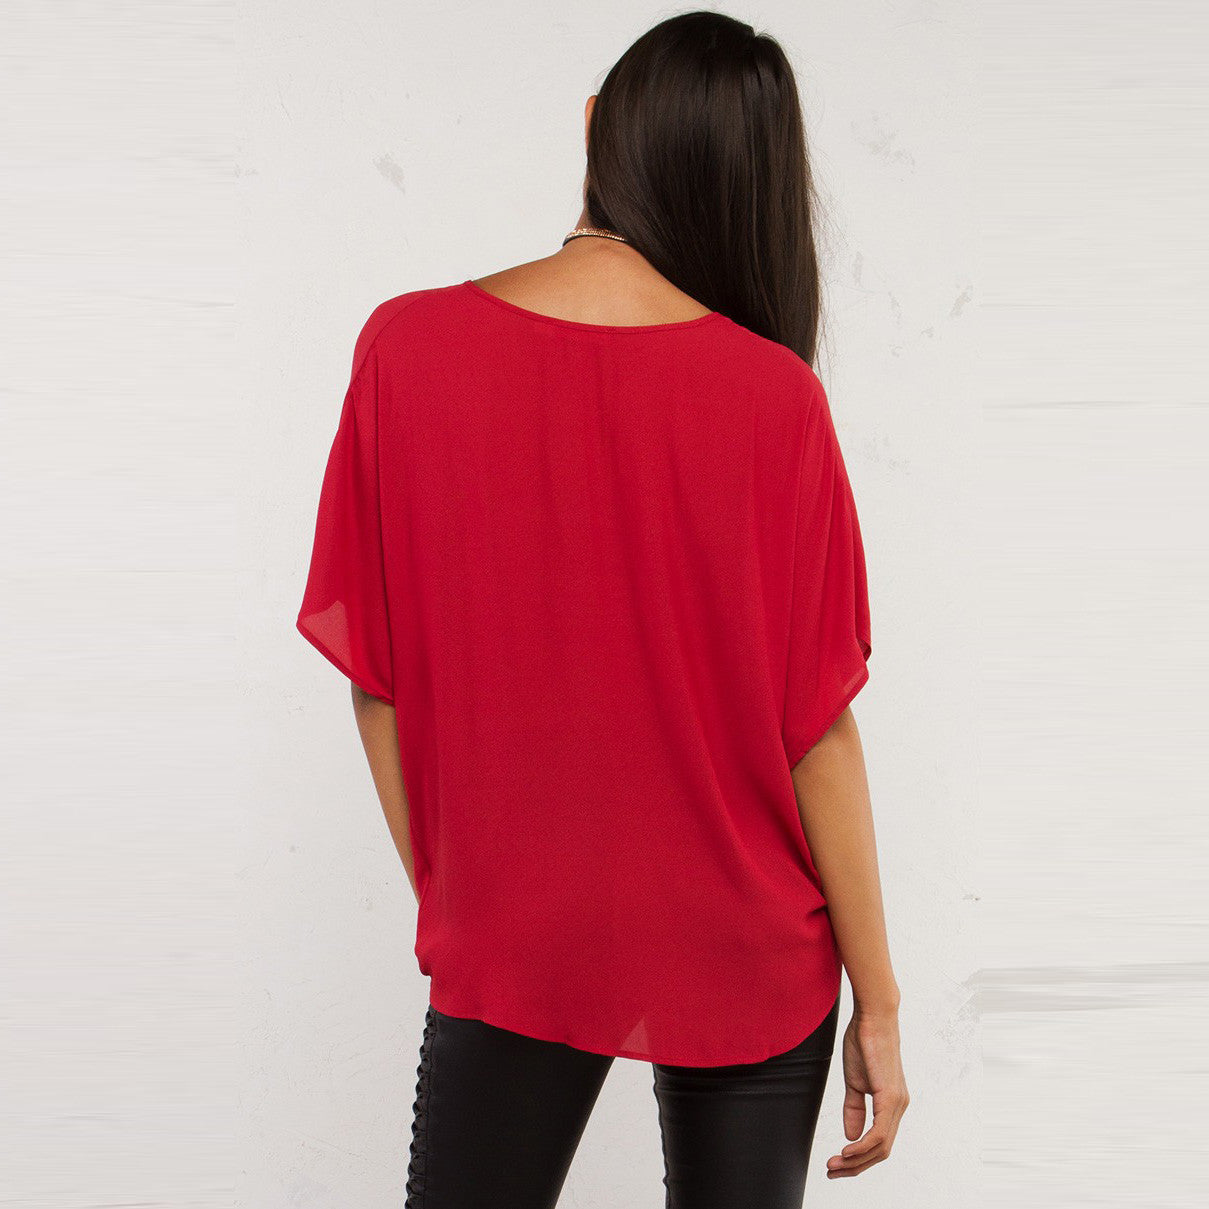 Solid Color Sleeve V-neck Low Loose Blouse,  - By Classier